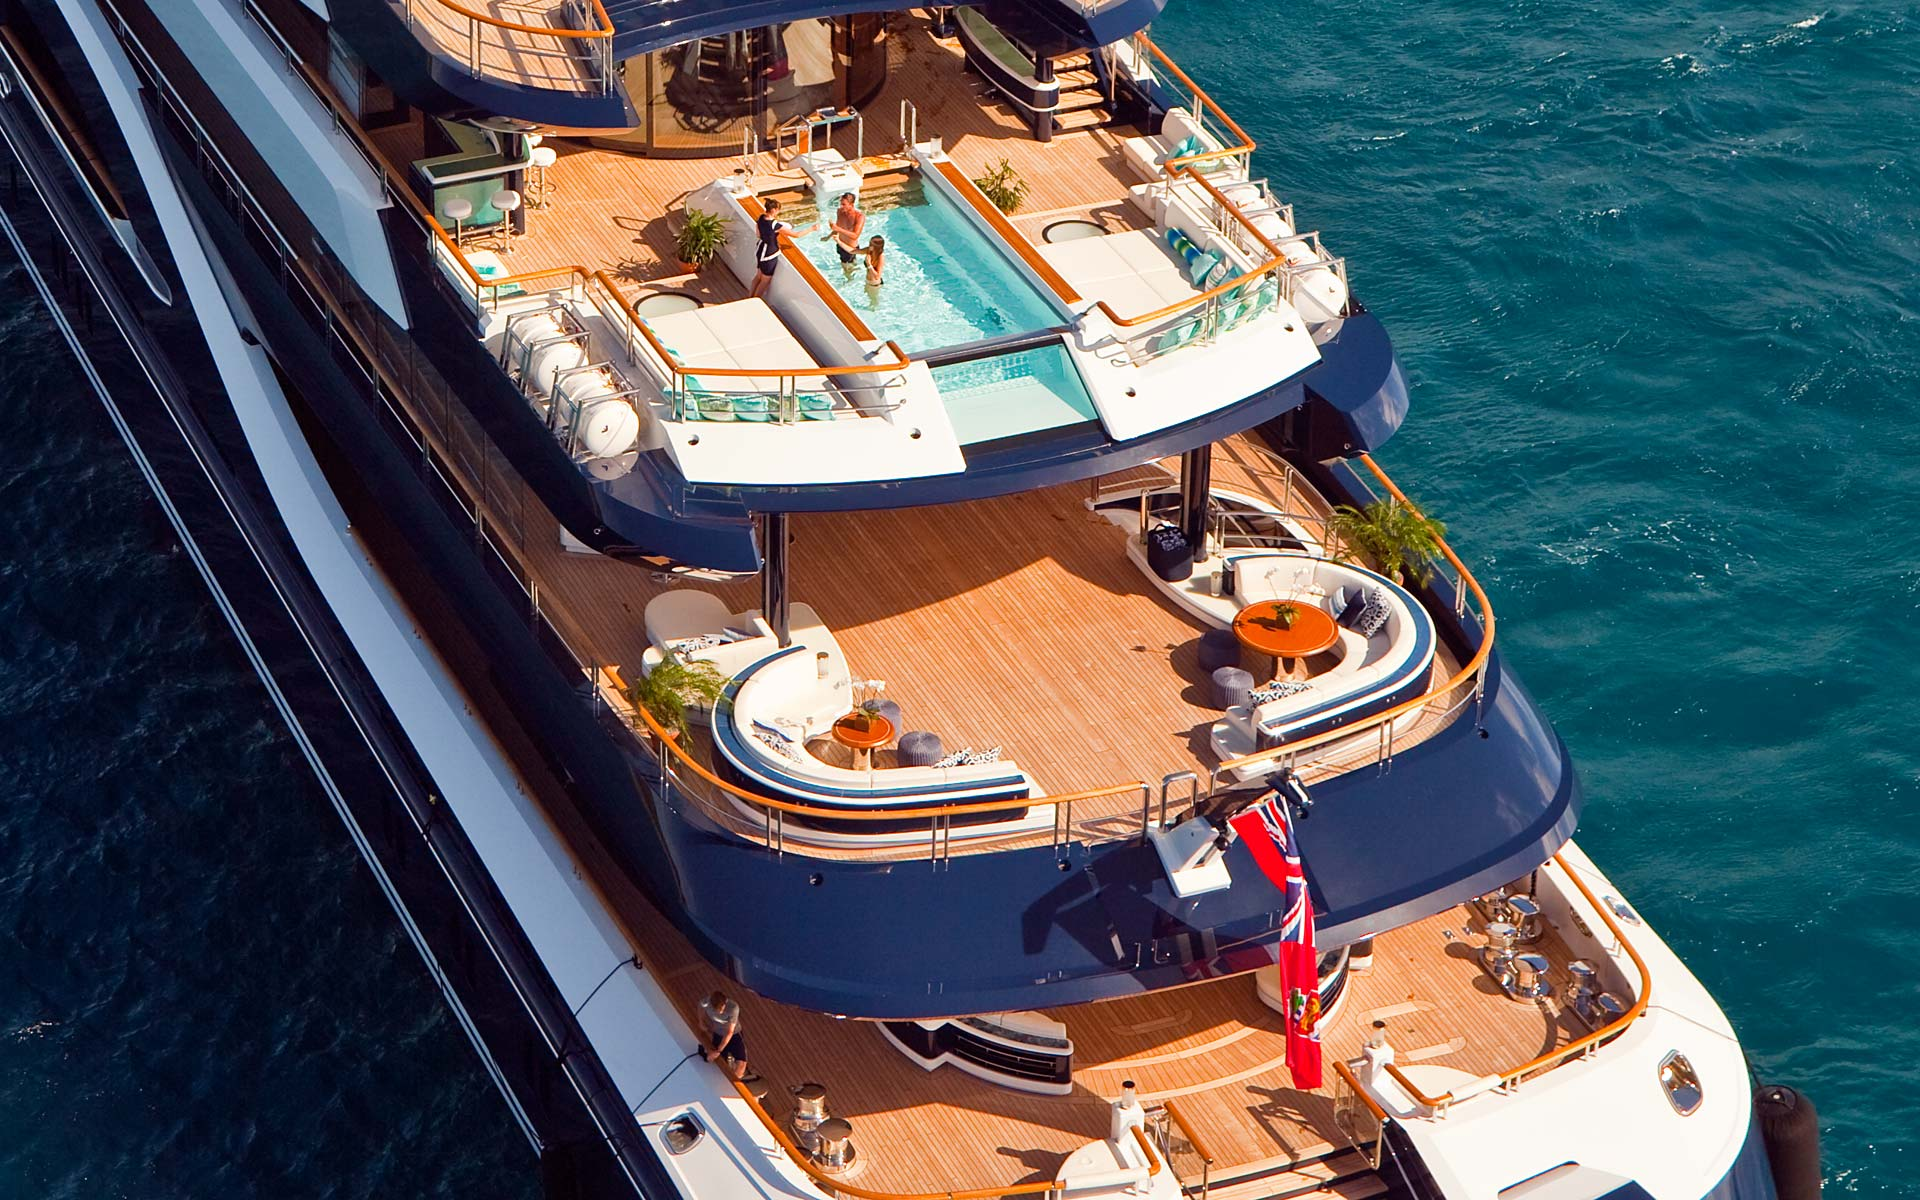 Specifications Yacht Solandge